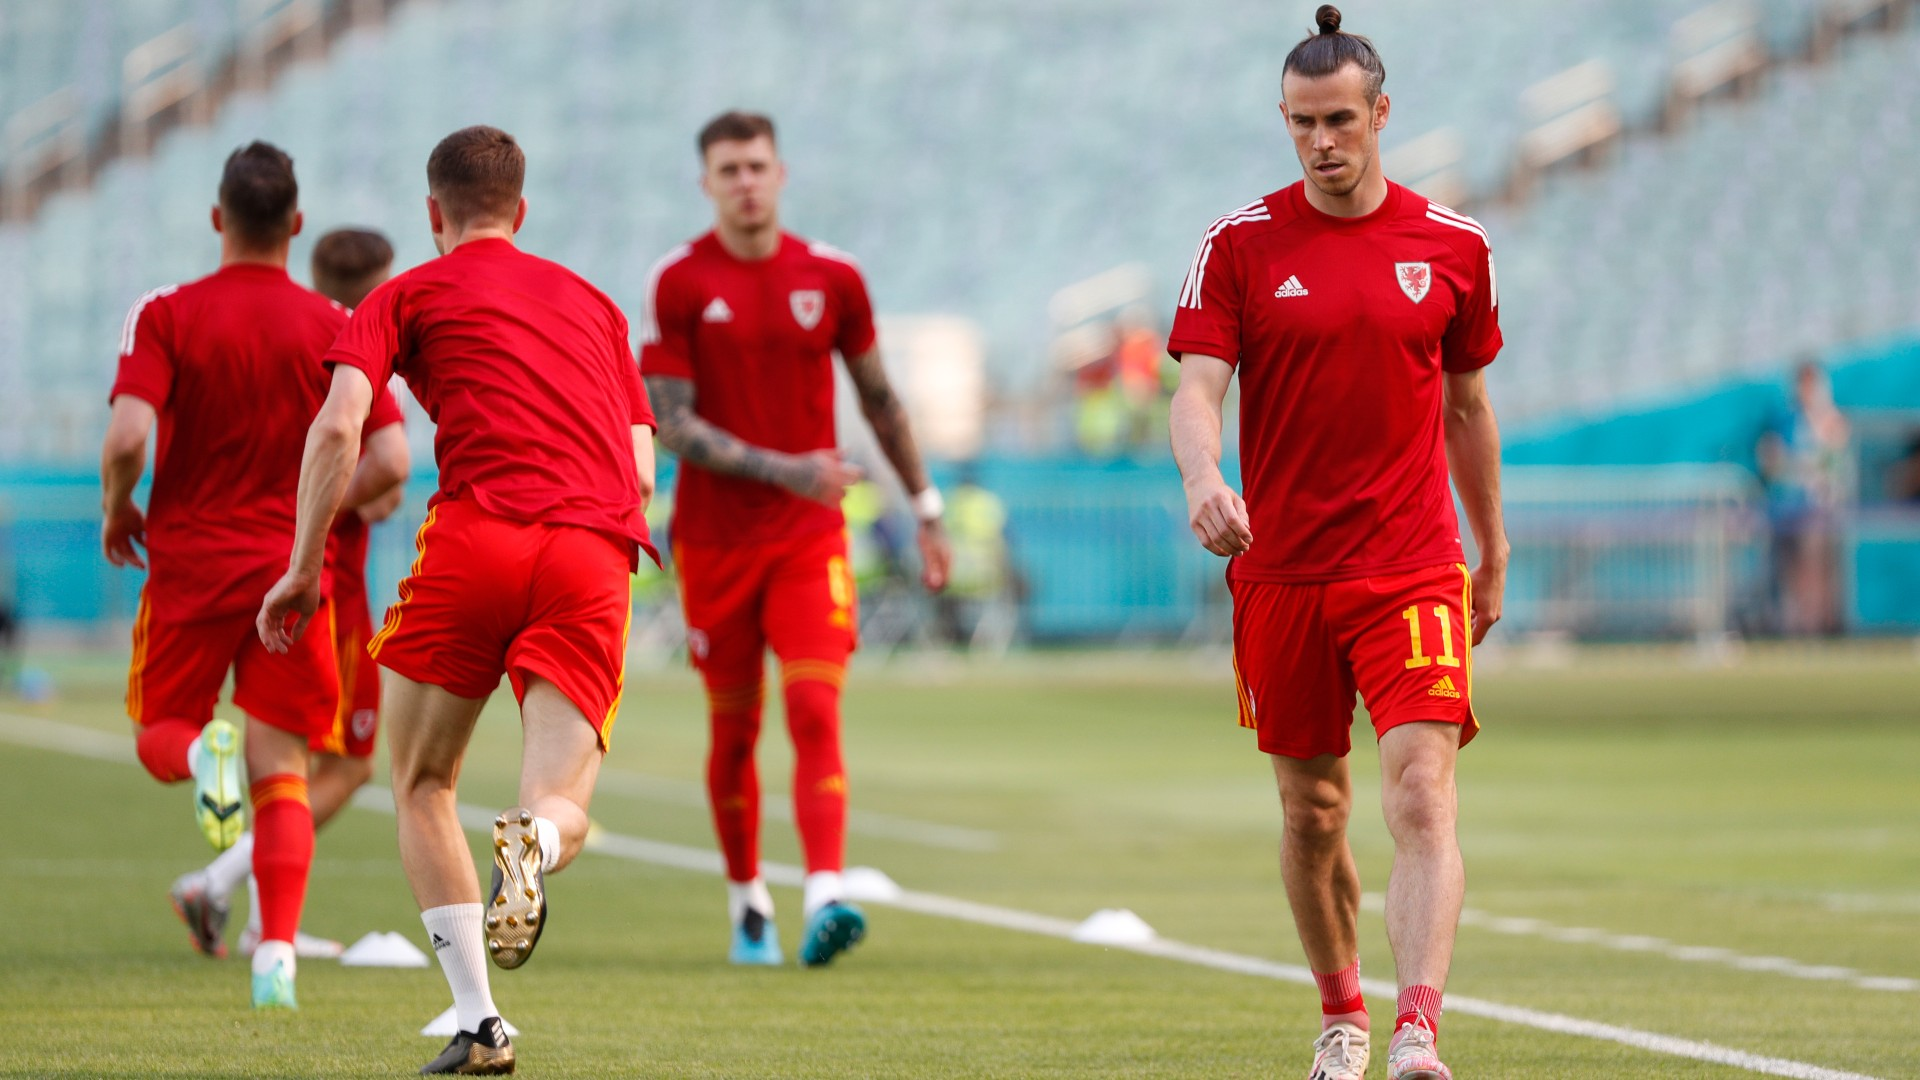 Euros Matchday LIVE: Wales play Switzerland, Denmark face Finland, Belgium take on Russia